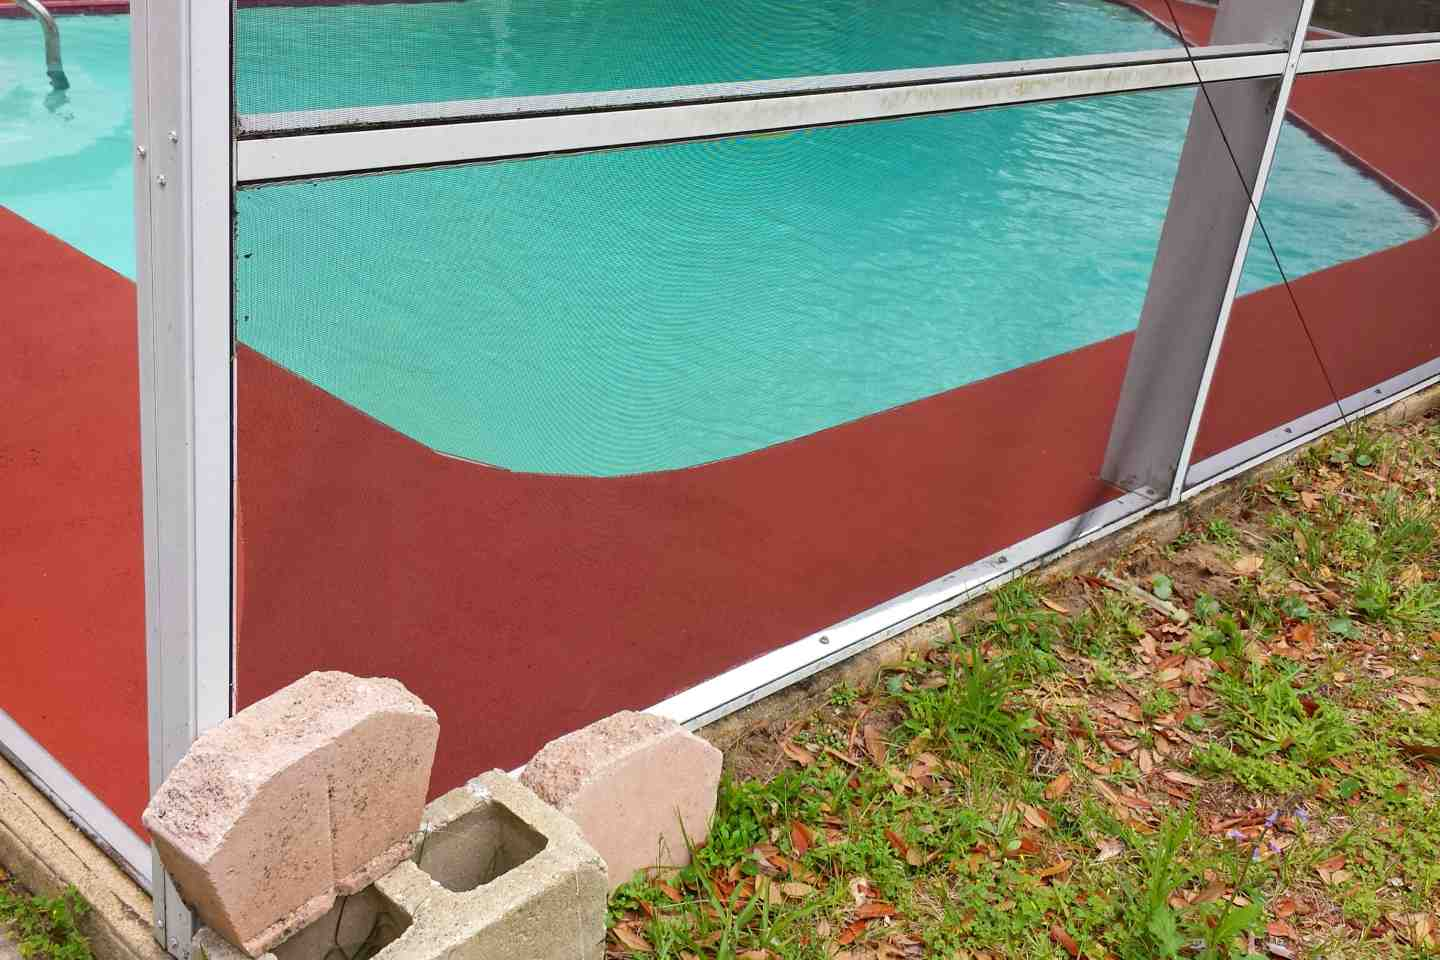 07-before-pool-screen-repair.jpg